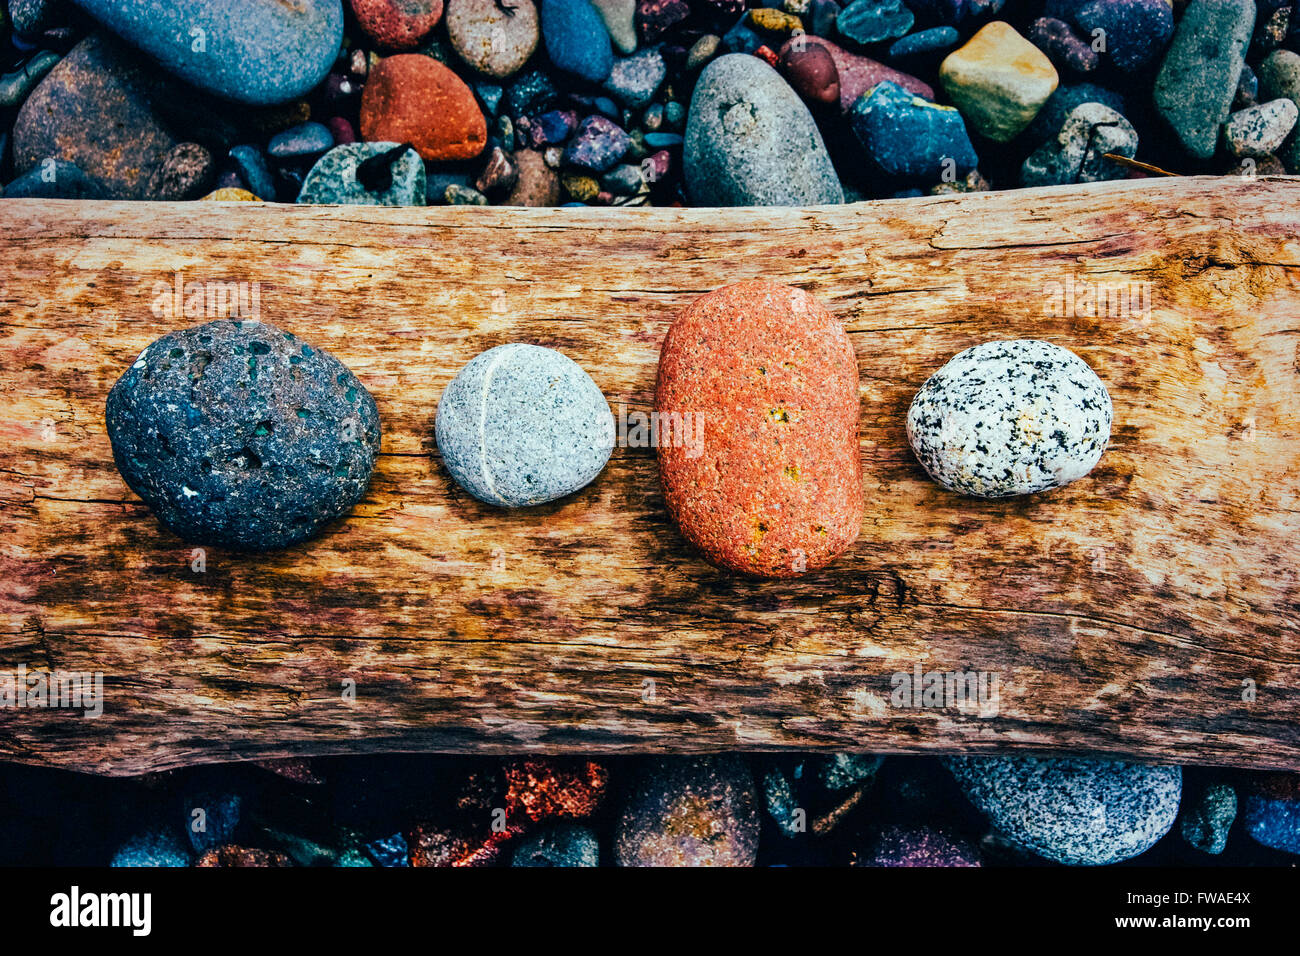 Colorful Stones on Driftwood Stock Photo